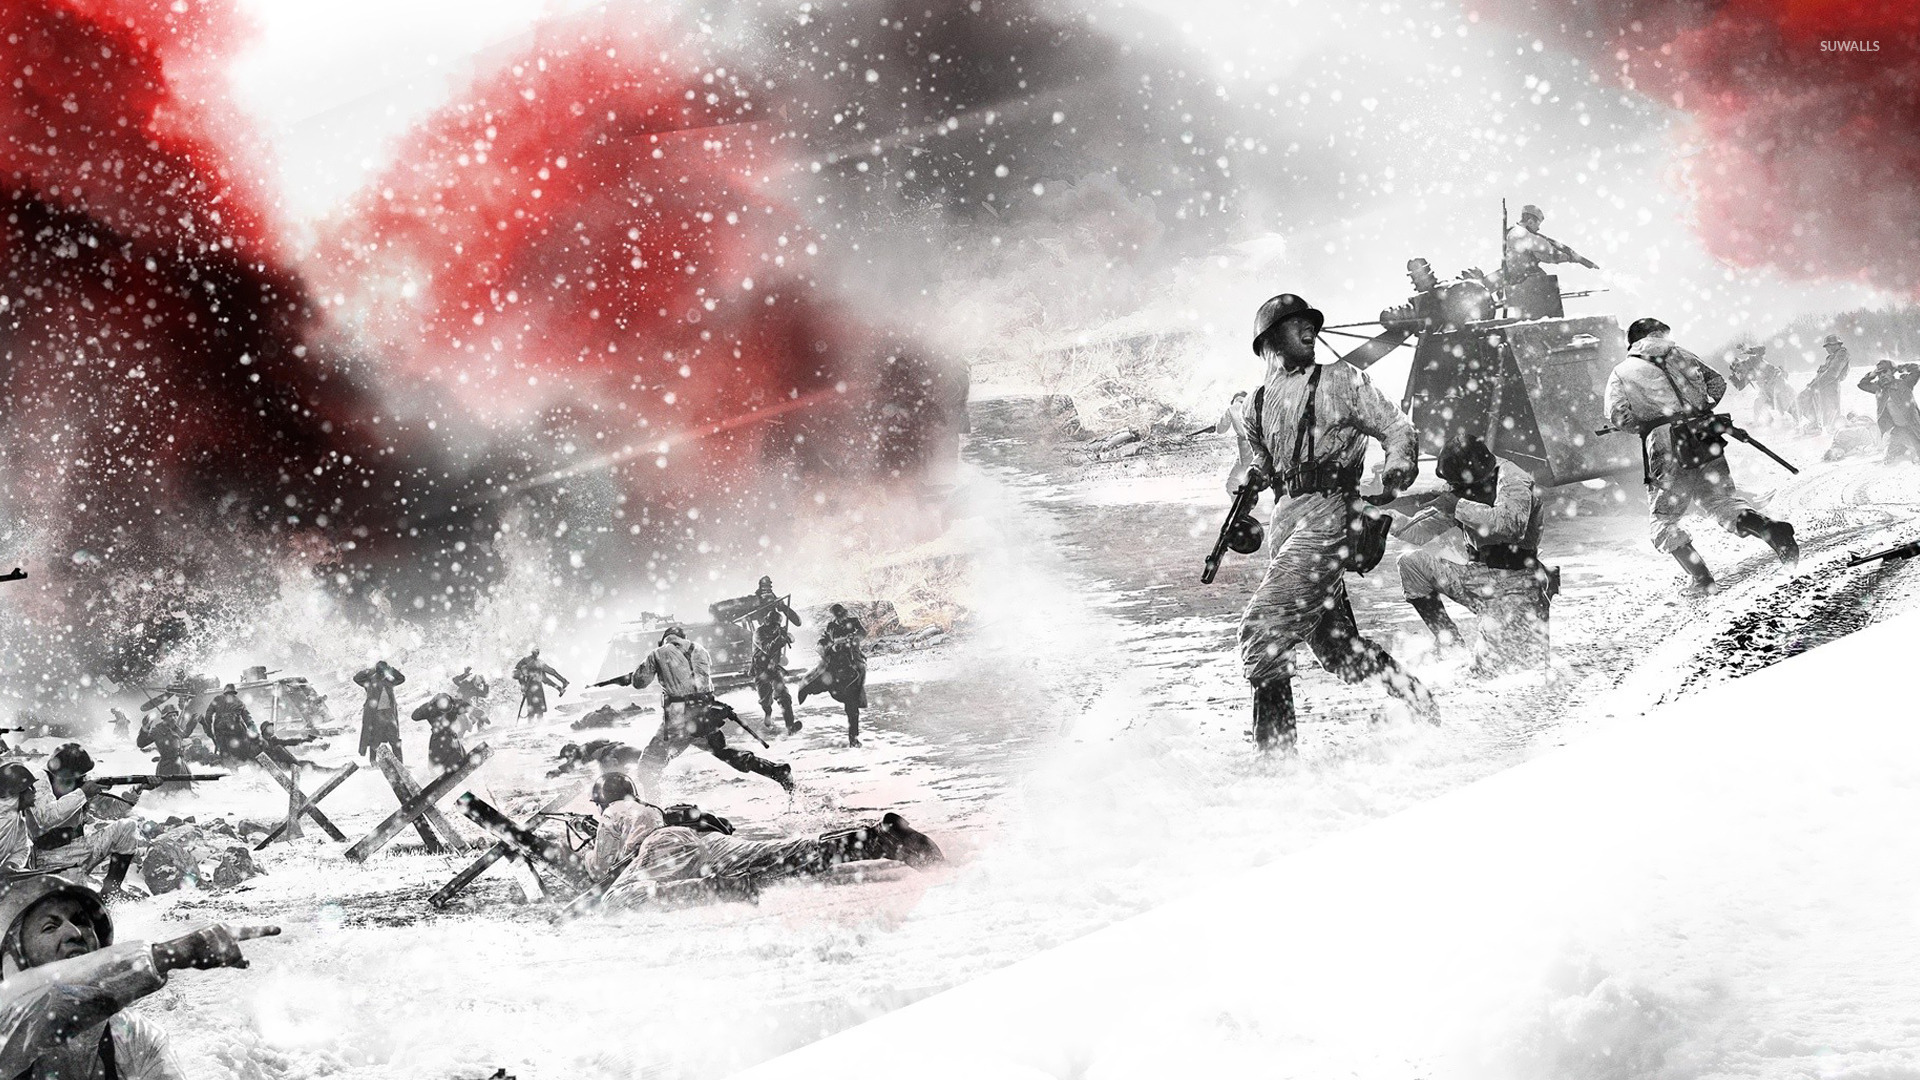 Free Download Company Of Heroes 2 Wallpaper Game Wallpapers